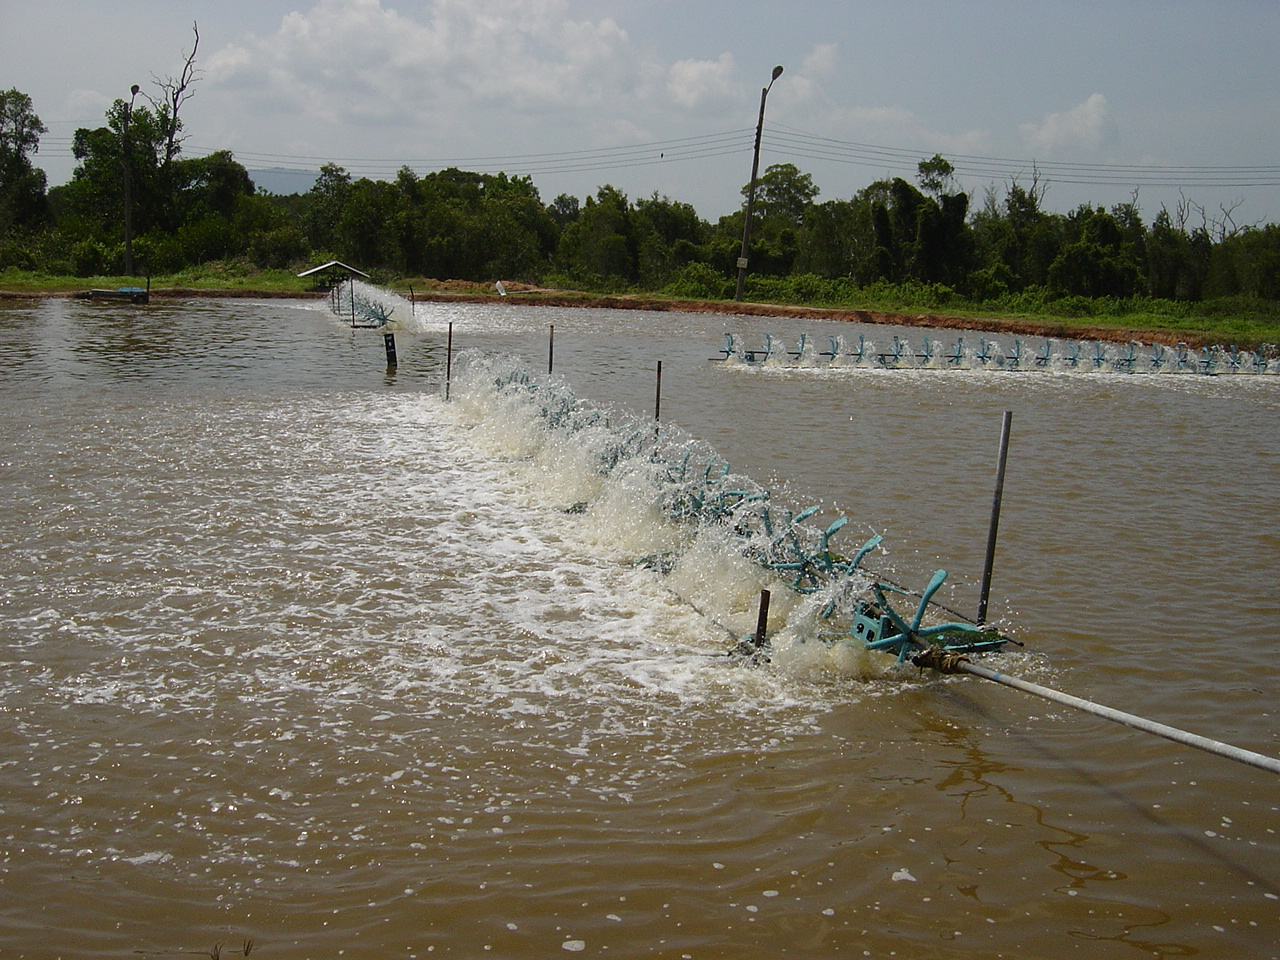 Aerating shrimp ponds in thailand fish consulting group for Preparing pond water for fish